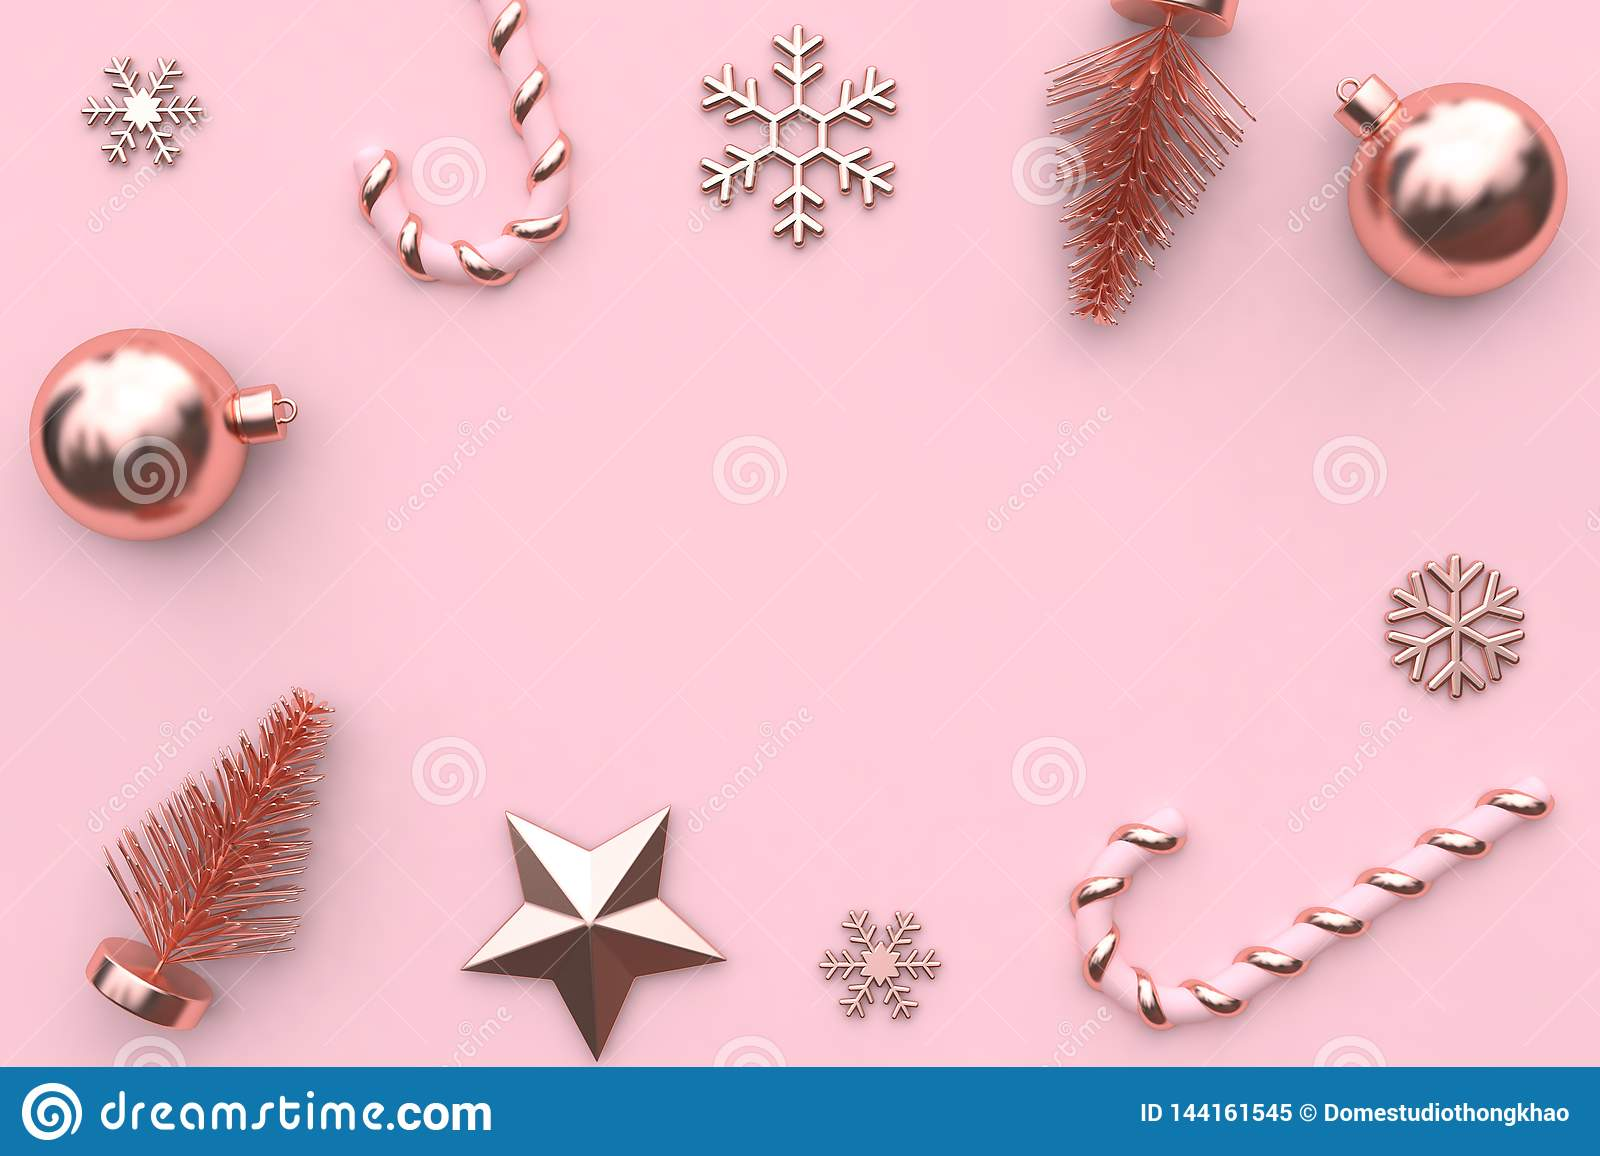 3d rendering abstract christmas background pink metallic glossy-rose gold